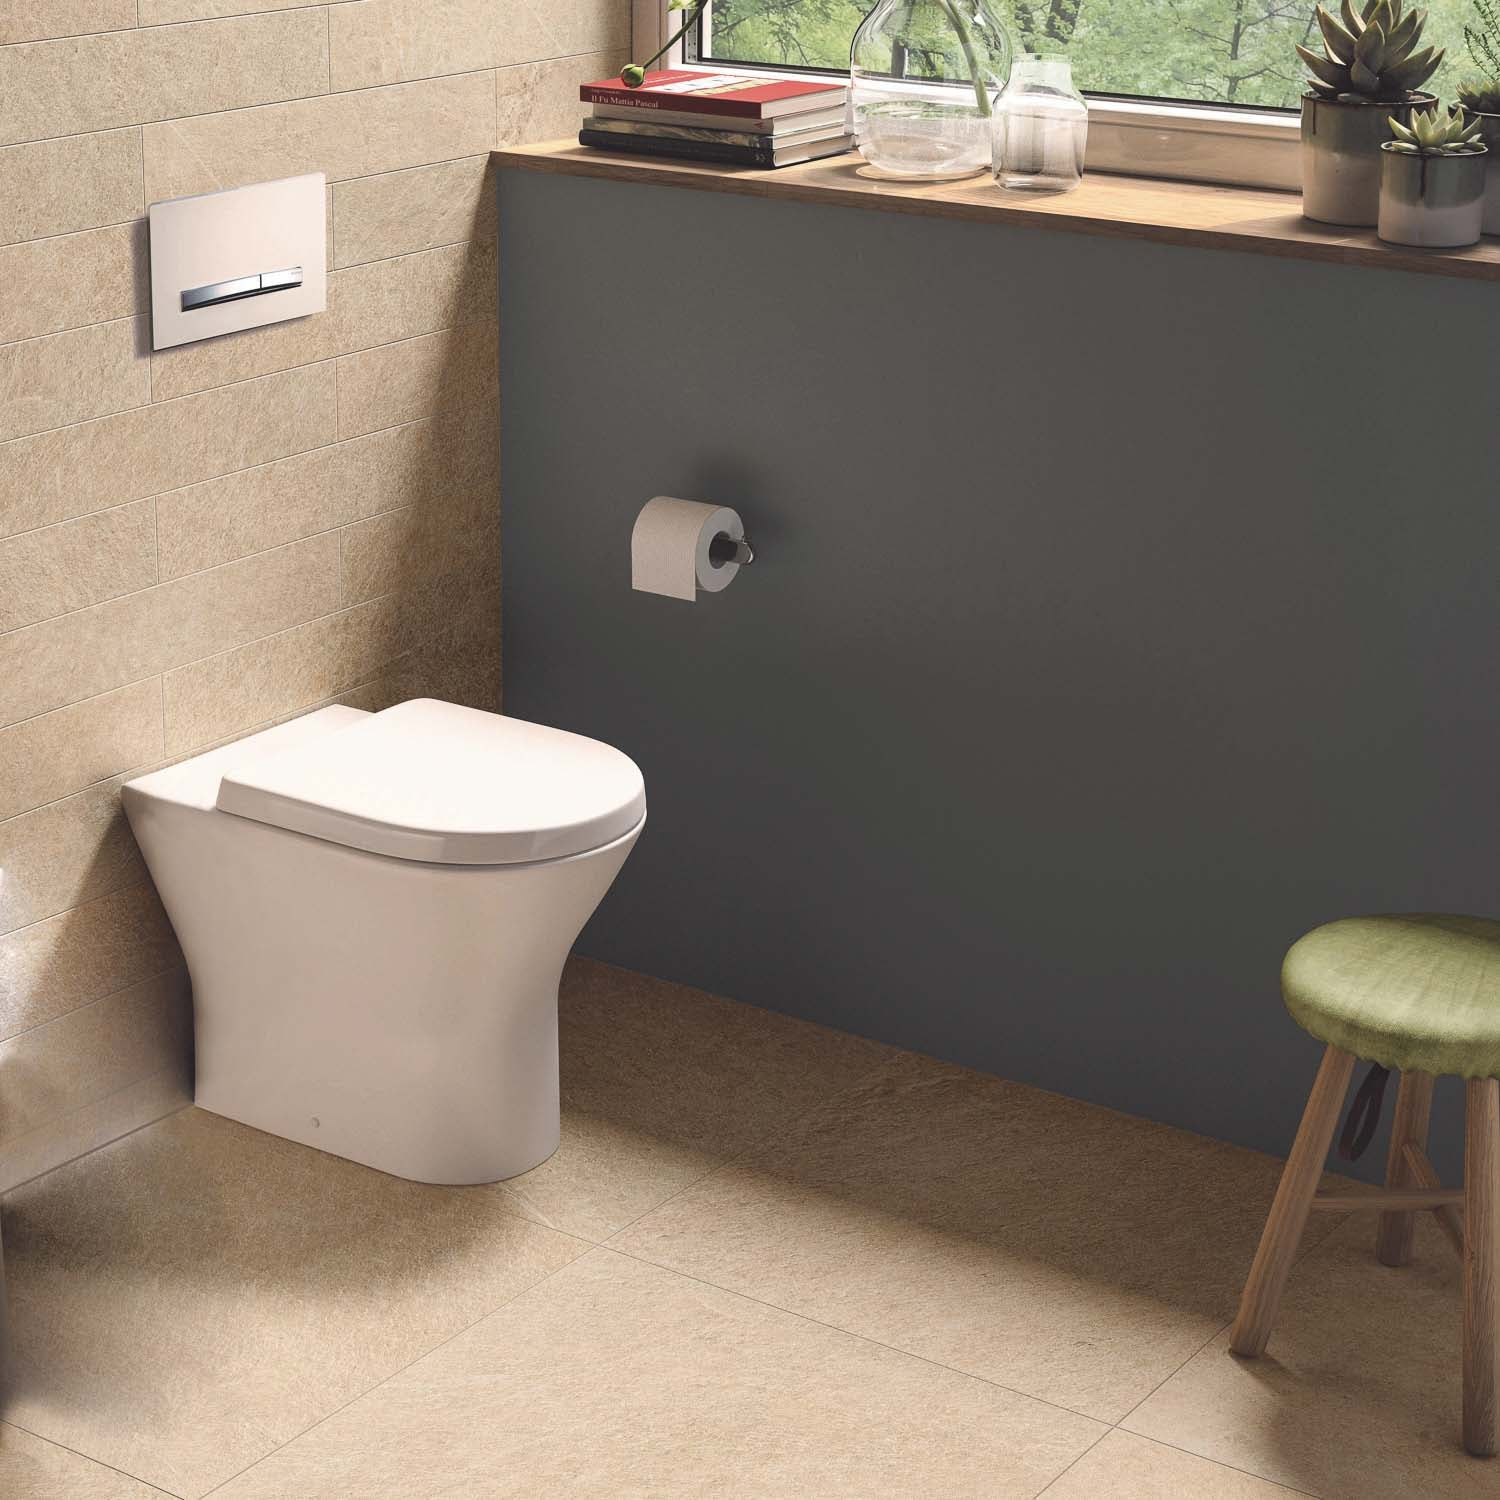 425mm Vesta Comfort Height Back to Wall Toilet with a seat and cover lifestyle image